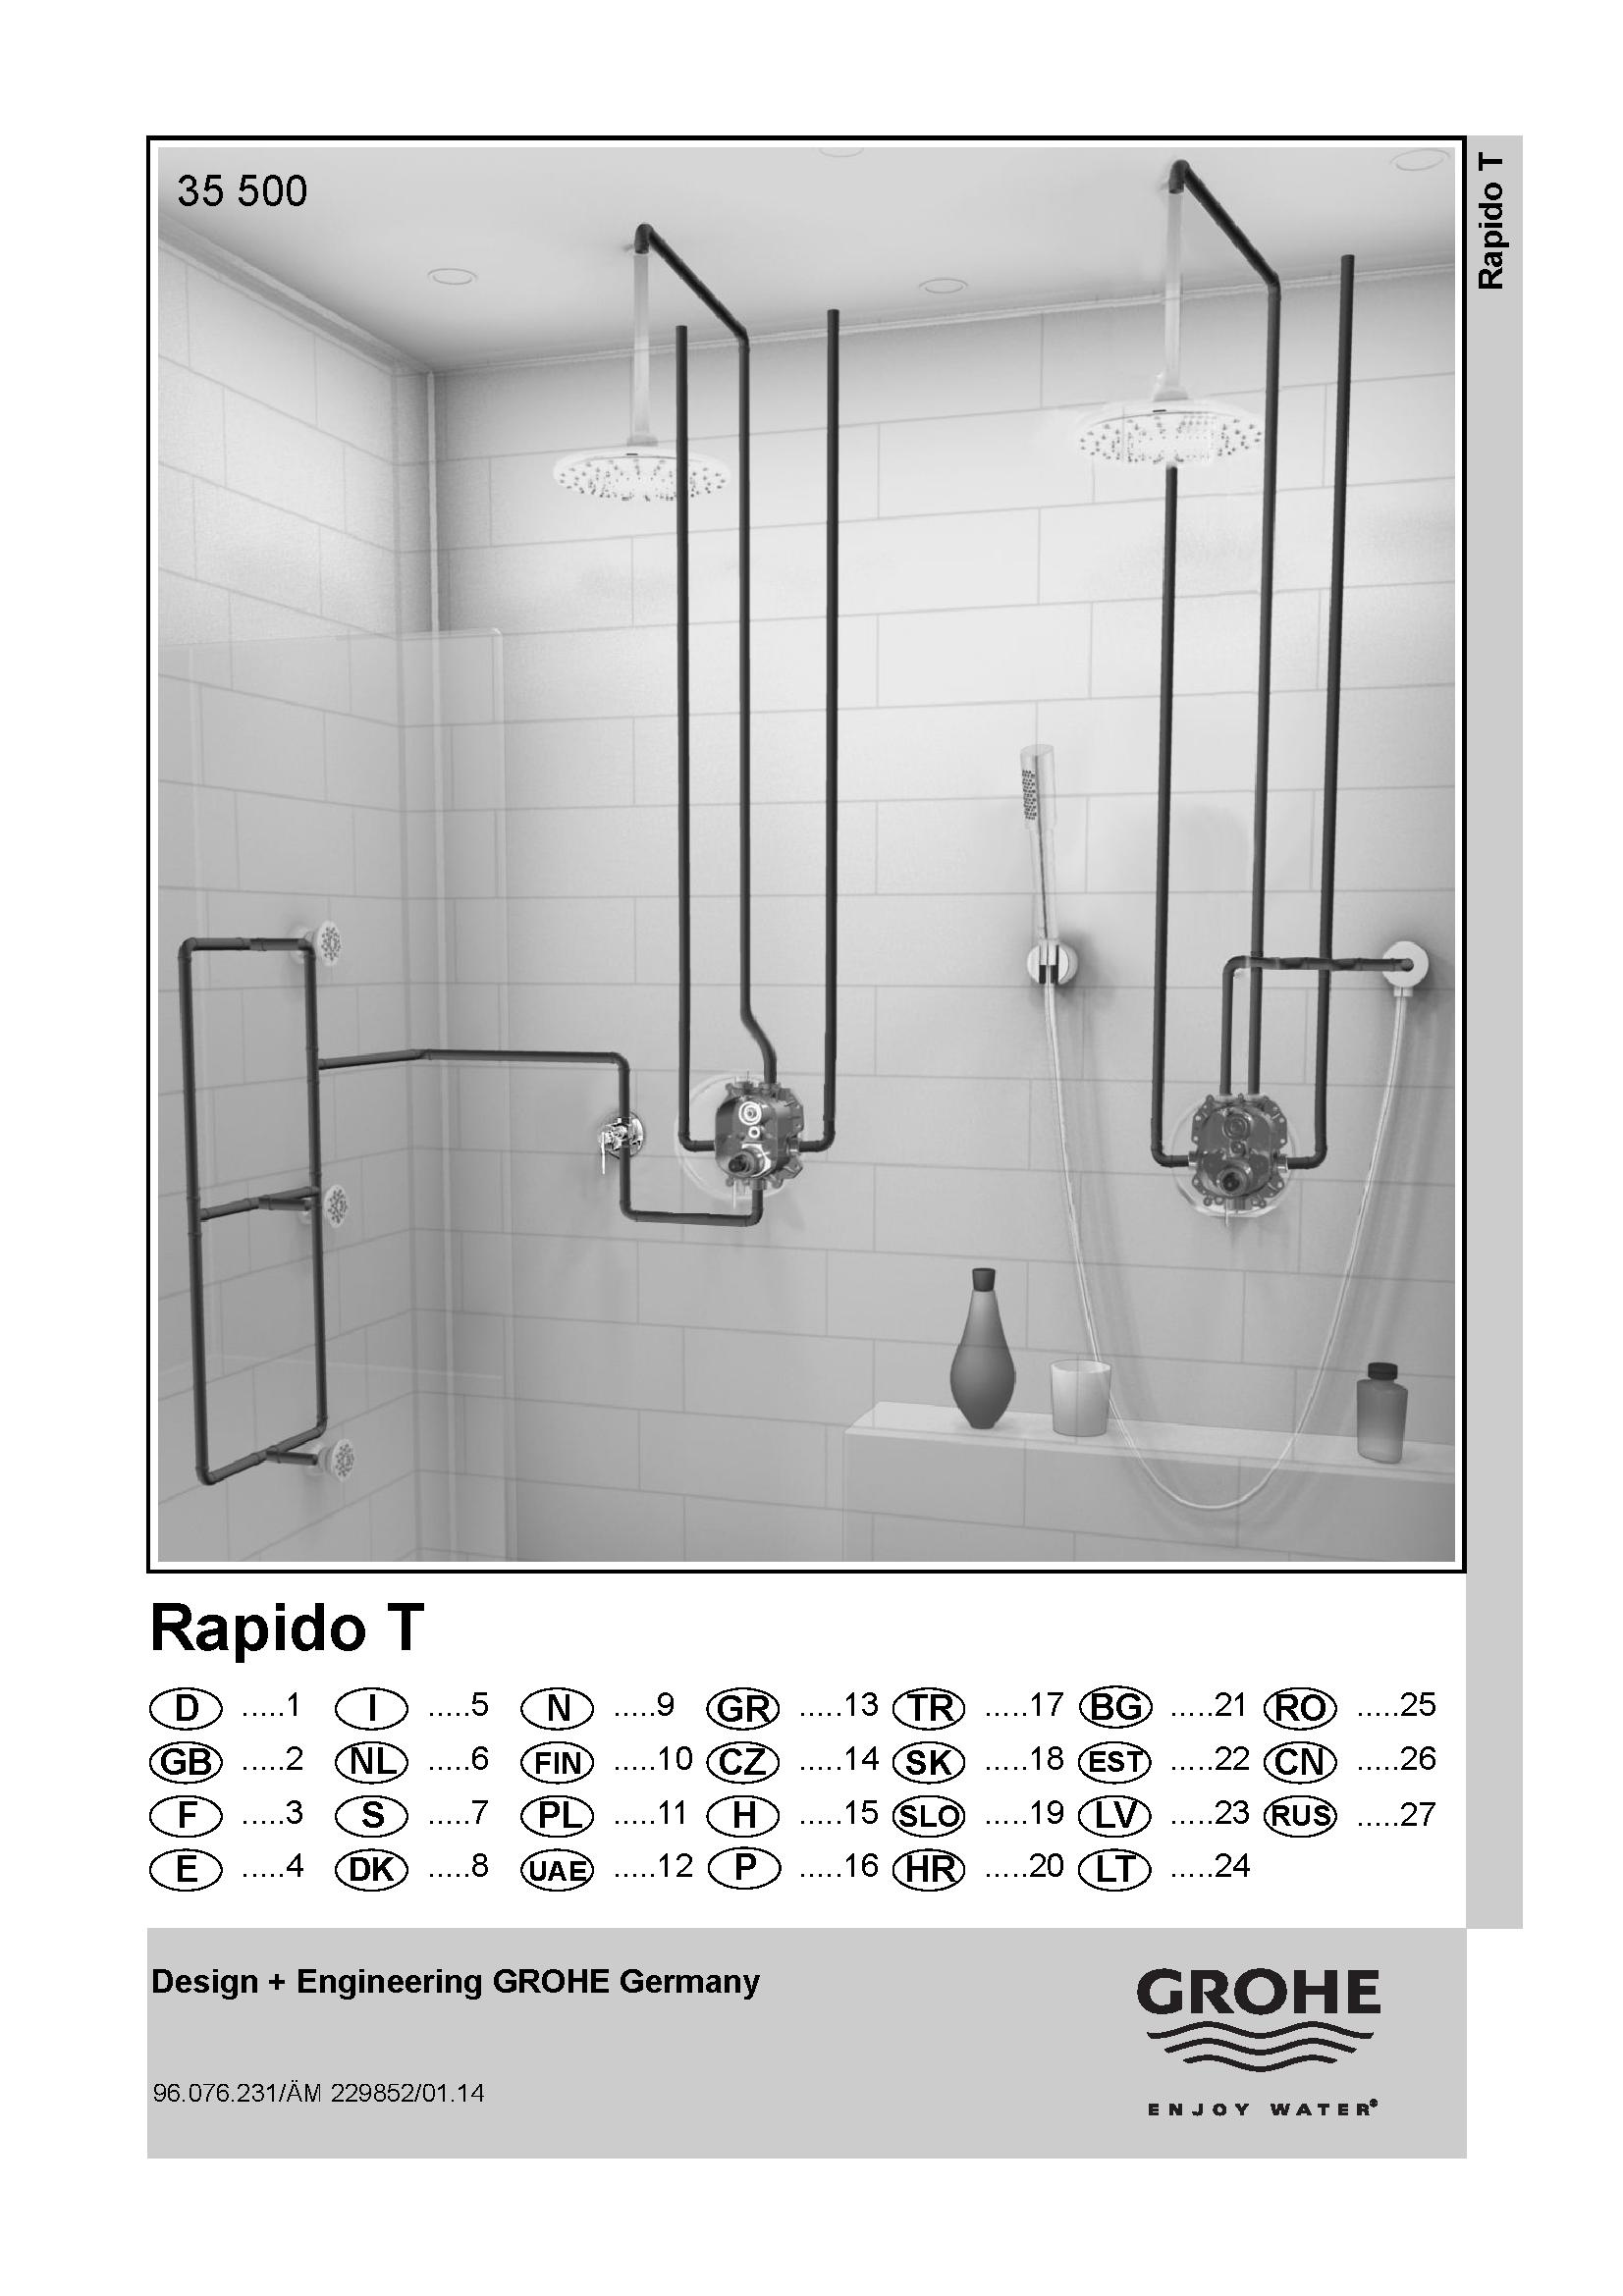 grohe 35500 rapido t box thermostatic harris bailey ltd. Black Bedroom Furniture Sets. Home Design Ideas